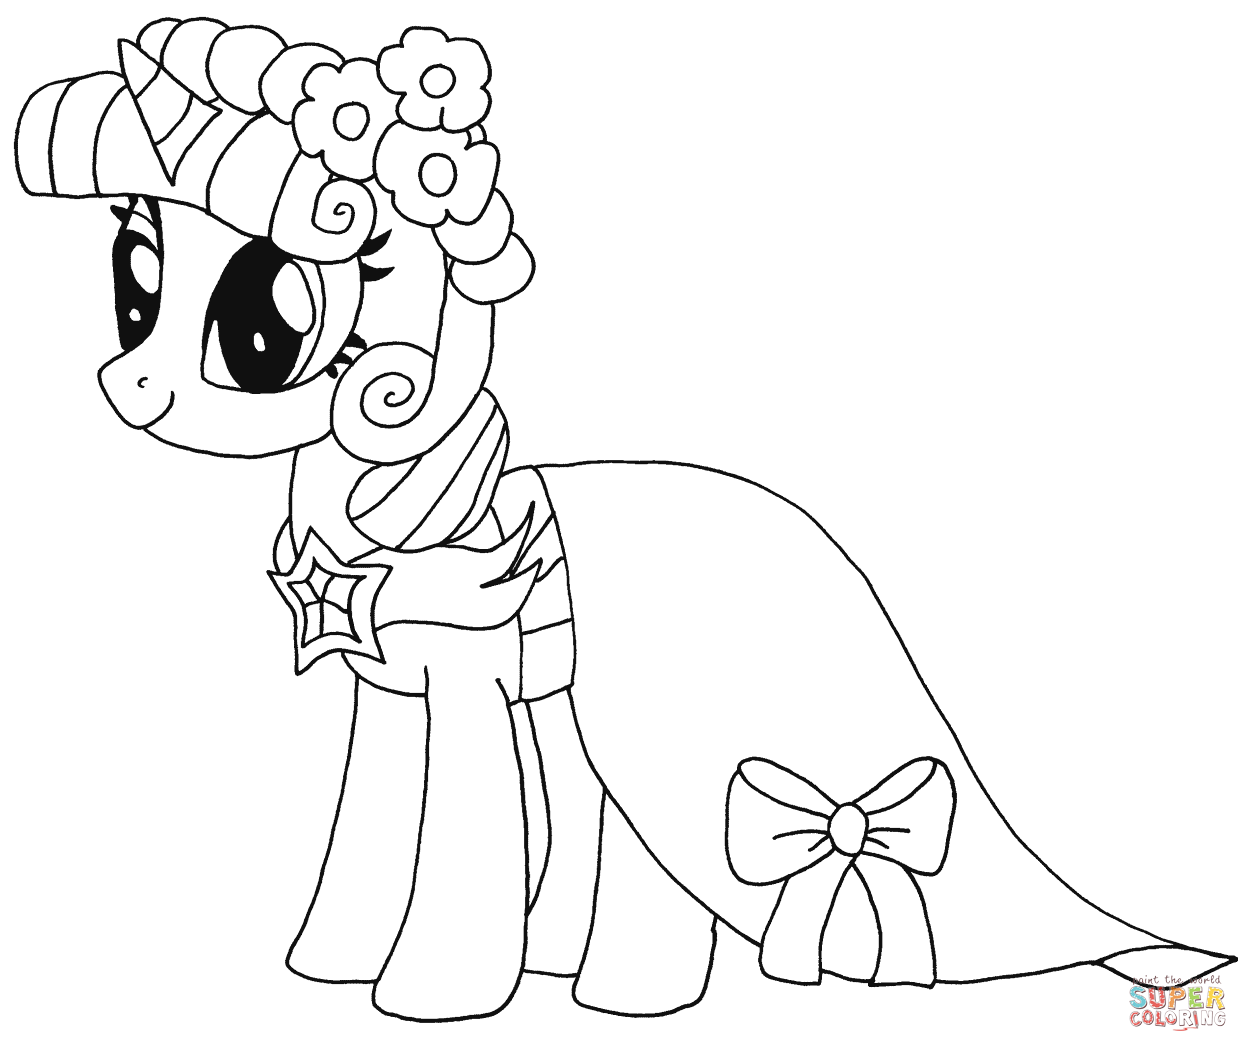 coloring pages twilight sparkle twilight sparkle coloring pages best coloring pages for kids twilight sparkle pages coloring